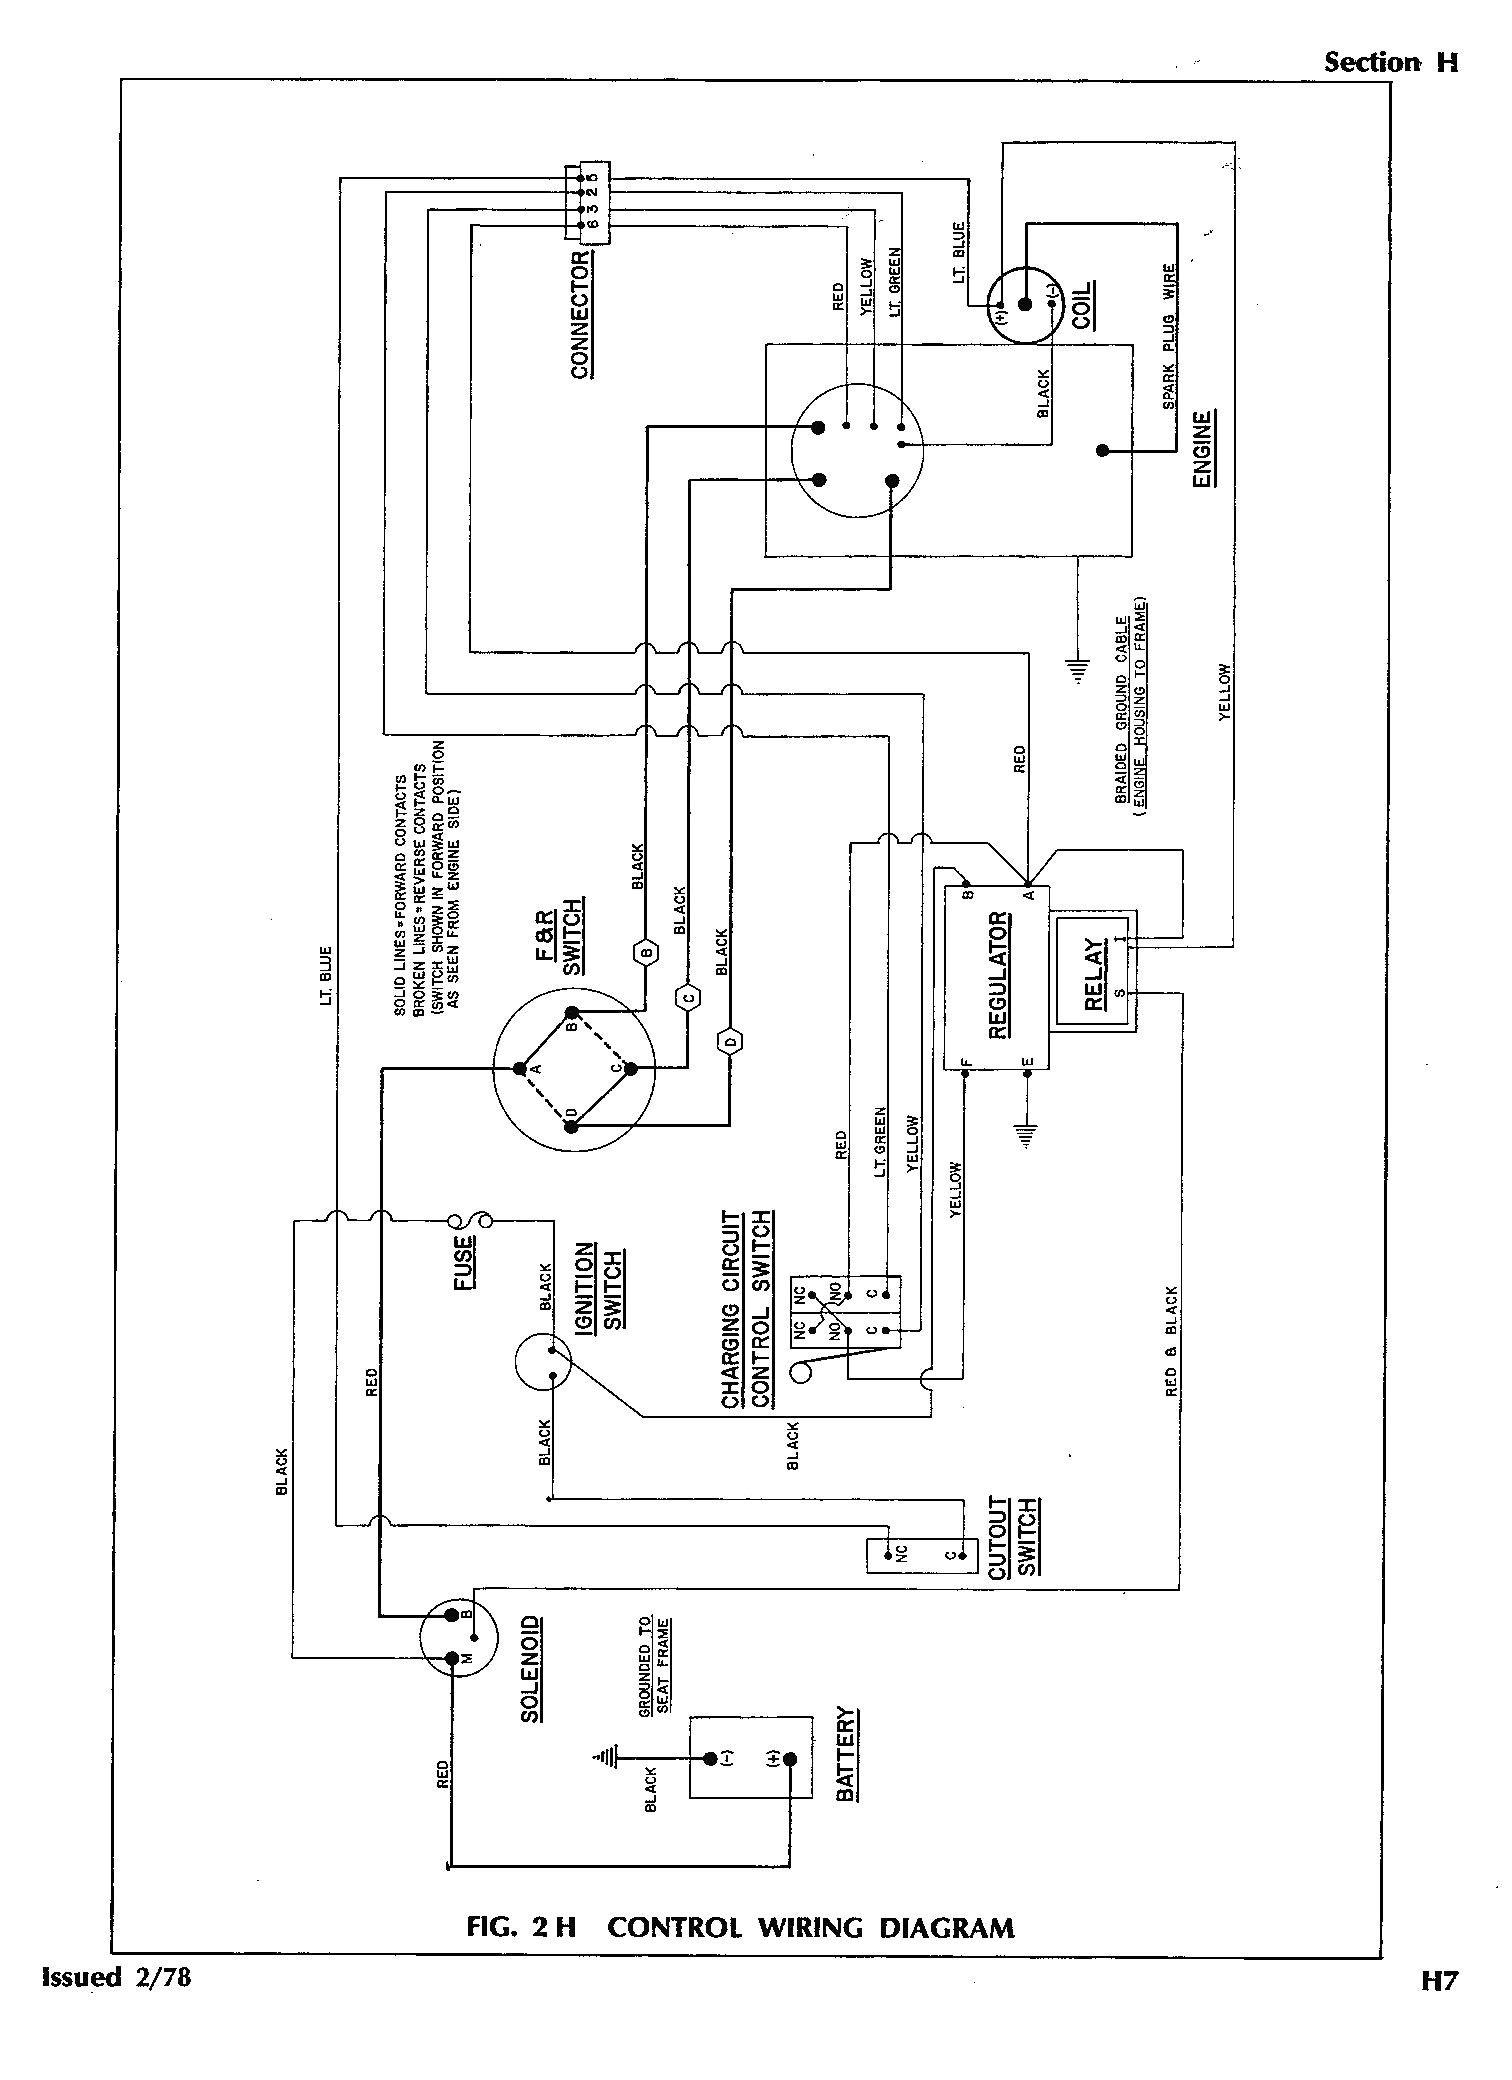 New Wiring Diagram For 2006 Club Car Precedent 48 Volt Diagram Diagramtemplate Diagramsample Gas Golf Carts Club Car Golf Cart Ezgo Golf Cart